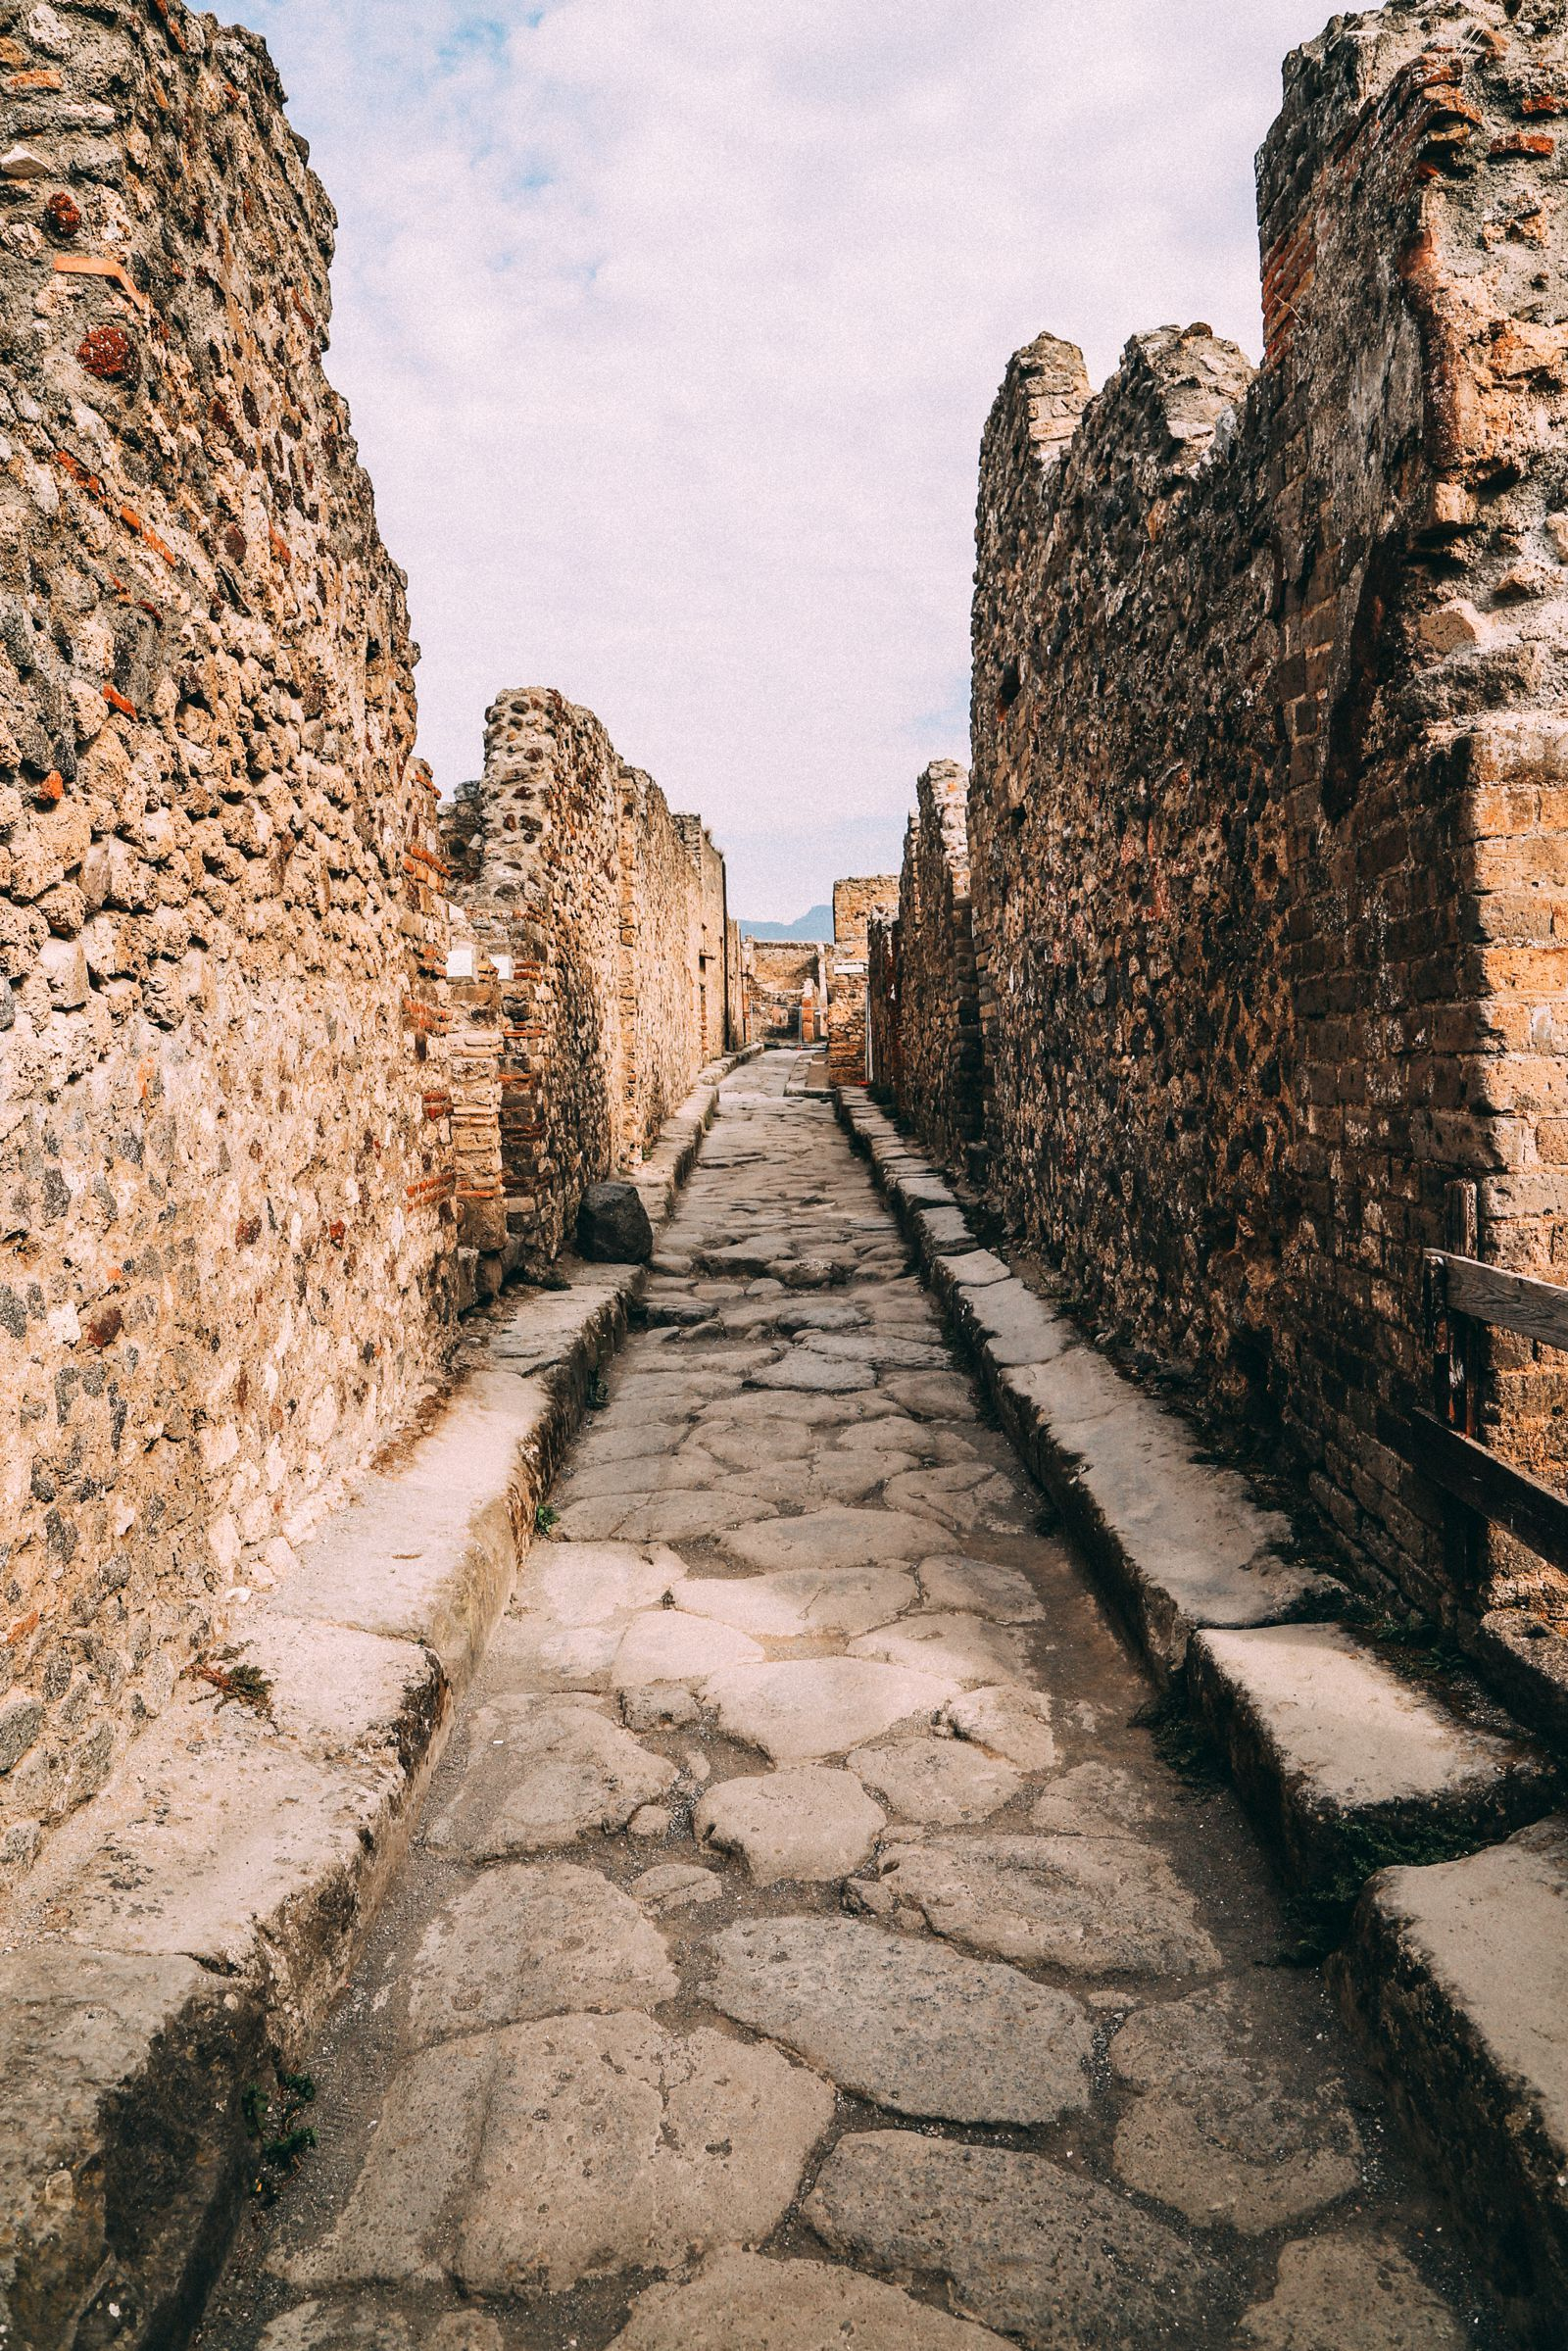 One of the most fascinating places on the globe : Pompeii!